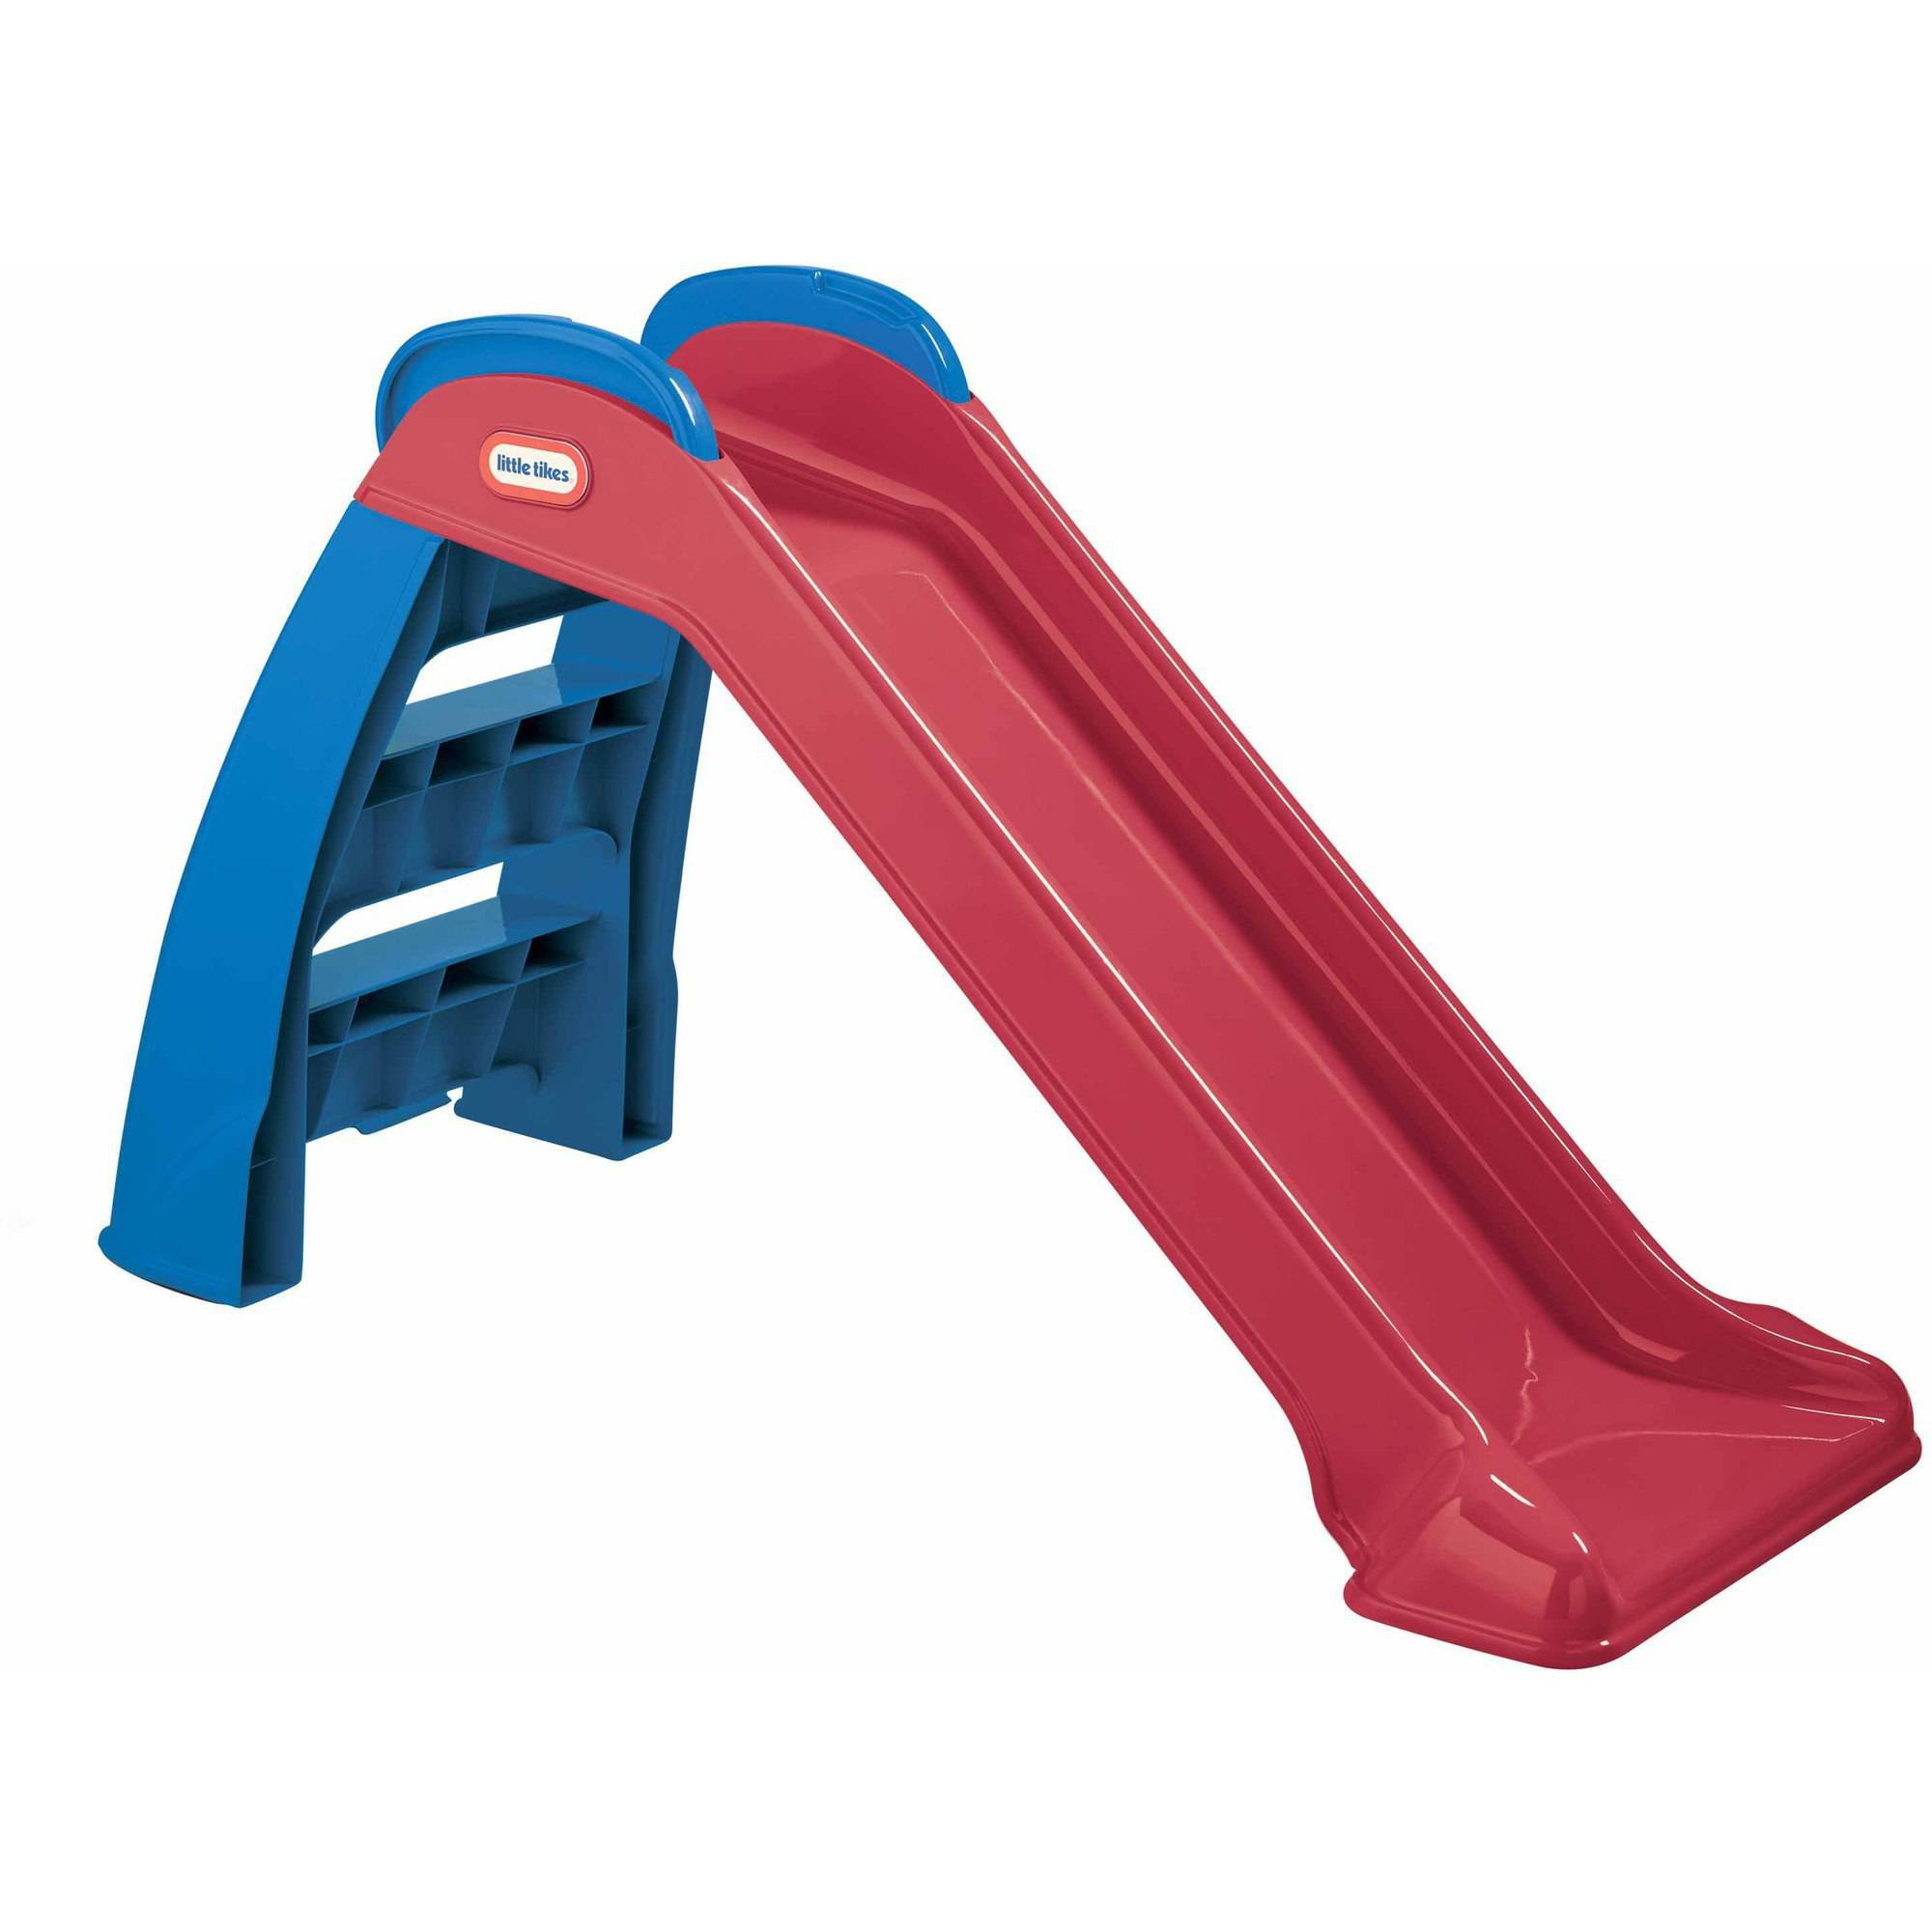 Toddler Slide And Climber Indoor Outdoor Climbers Slides For Toddlers Folds For Easy Storage Infant Climbers Kids Playground Backyard Fun Toys Plastic Folding NEW